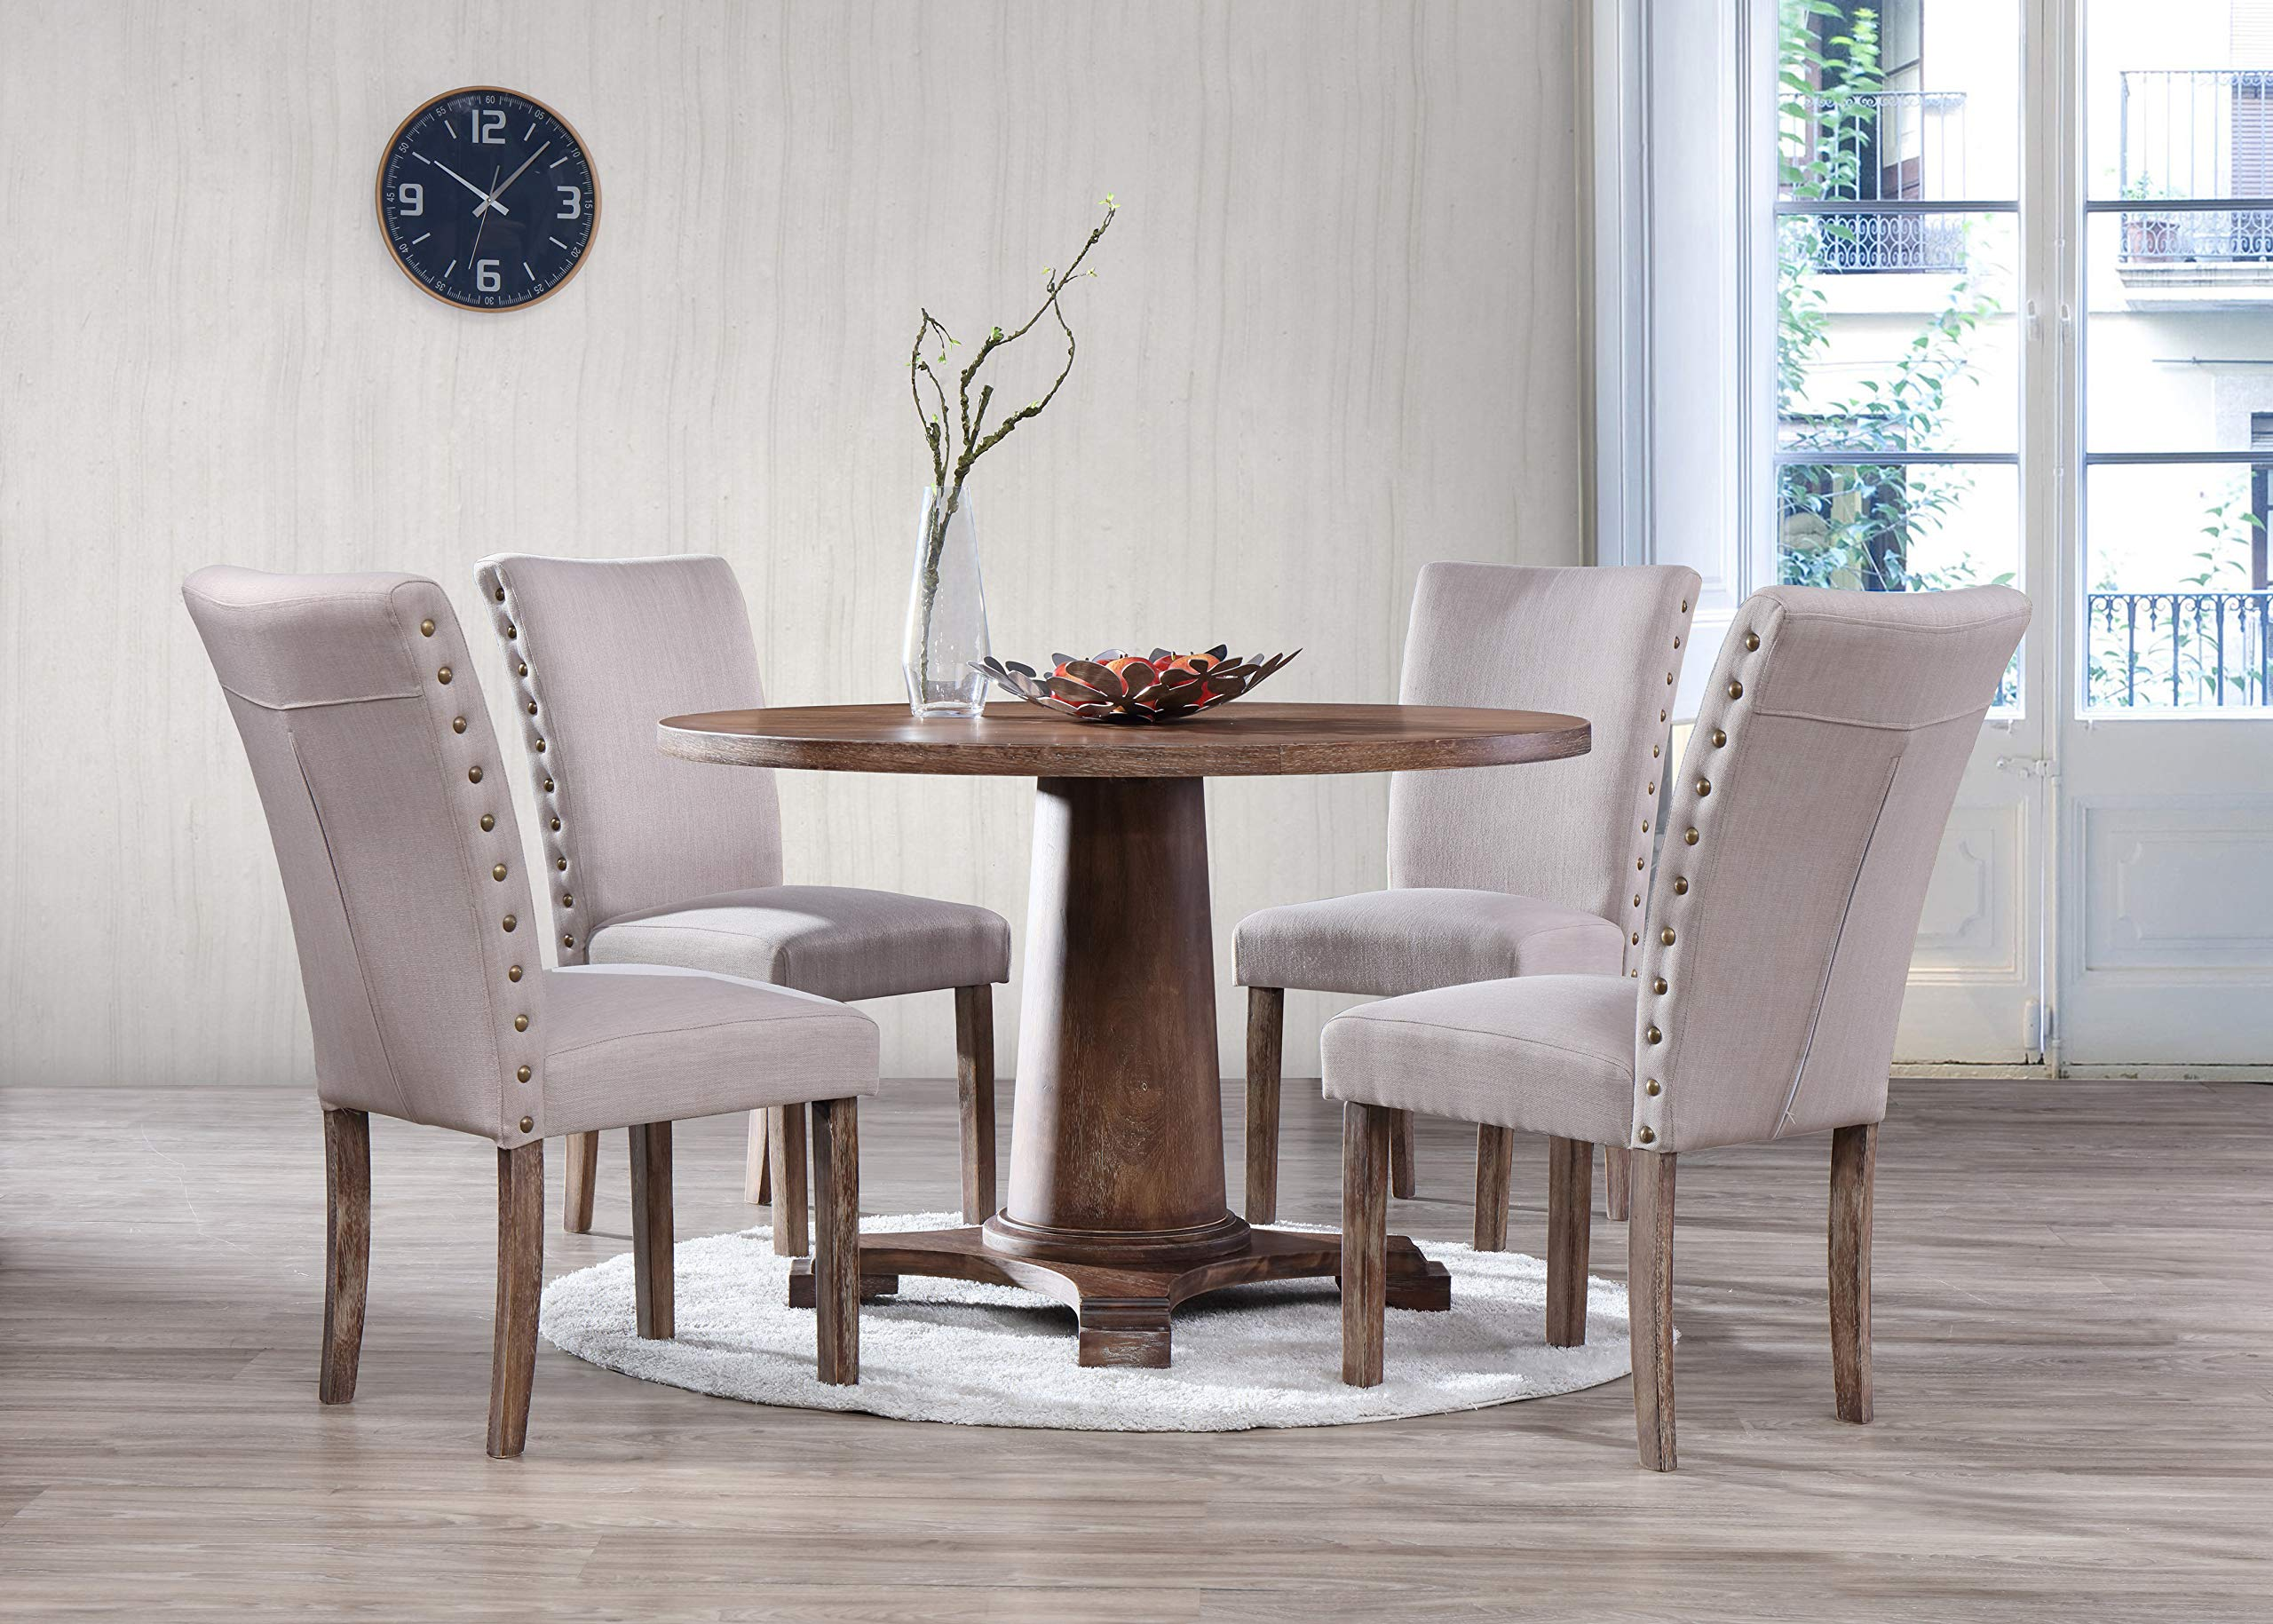 Best Master Furniture Carey 5 Pcs Dining Set by Best Master Furniture